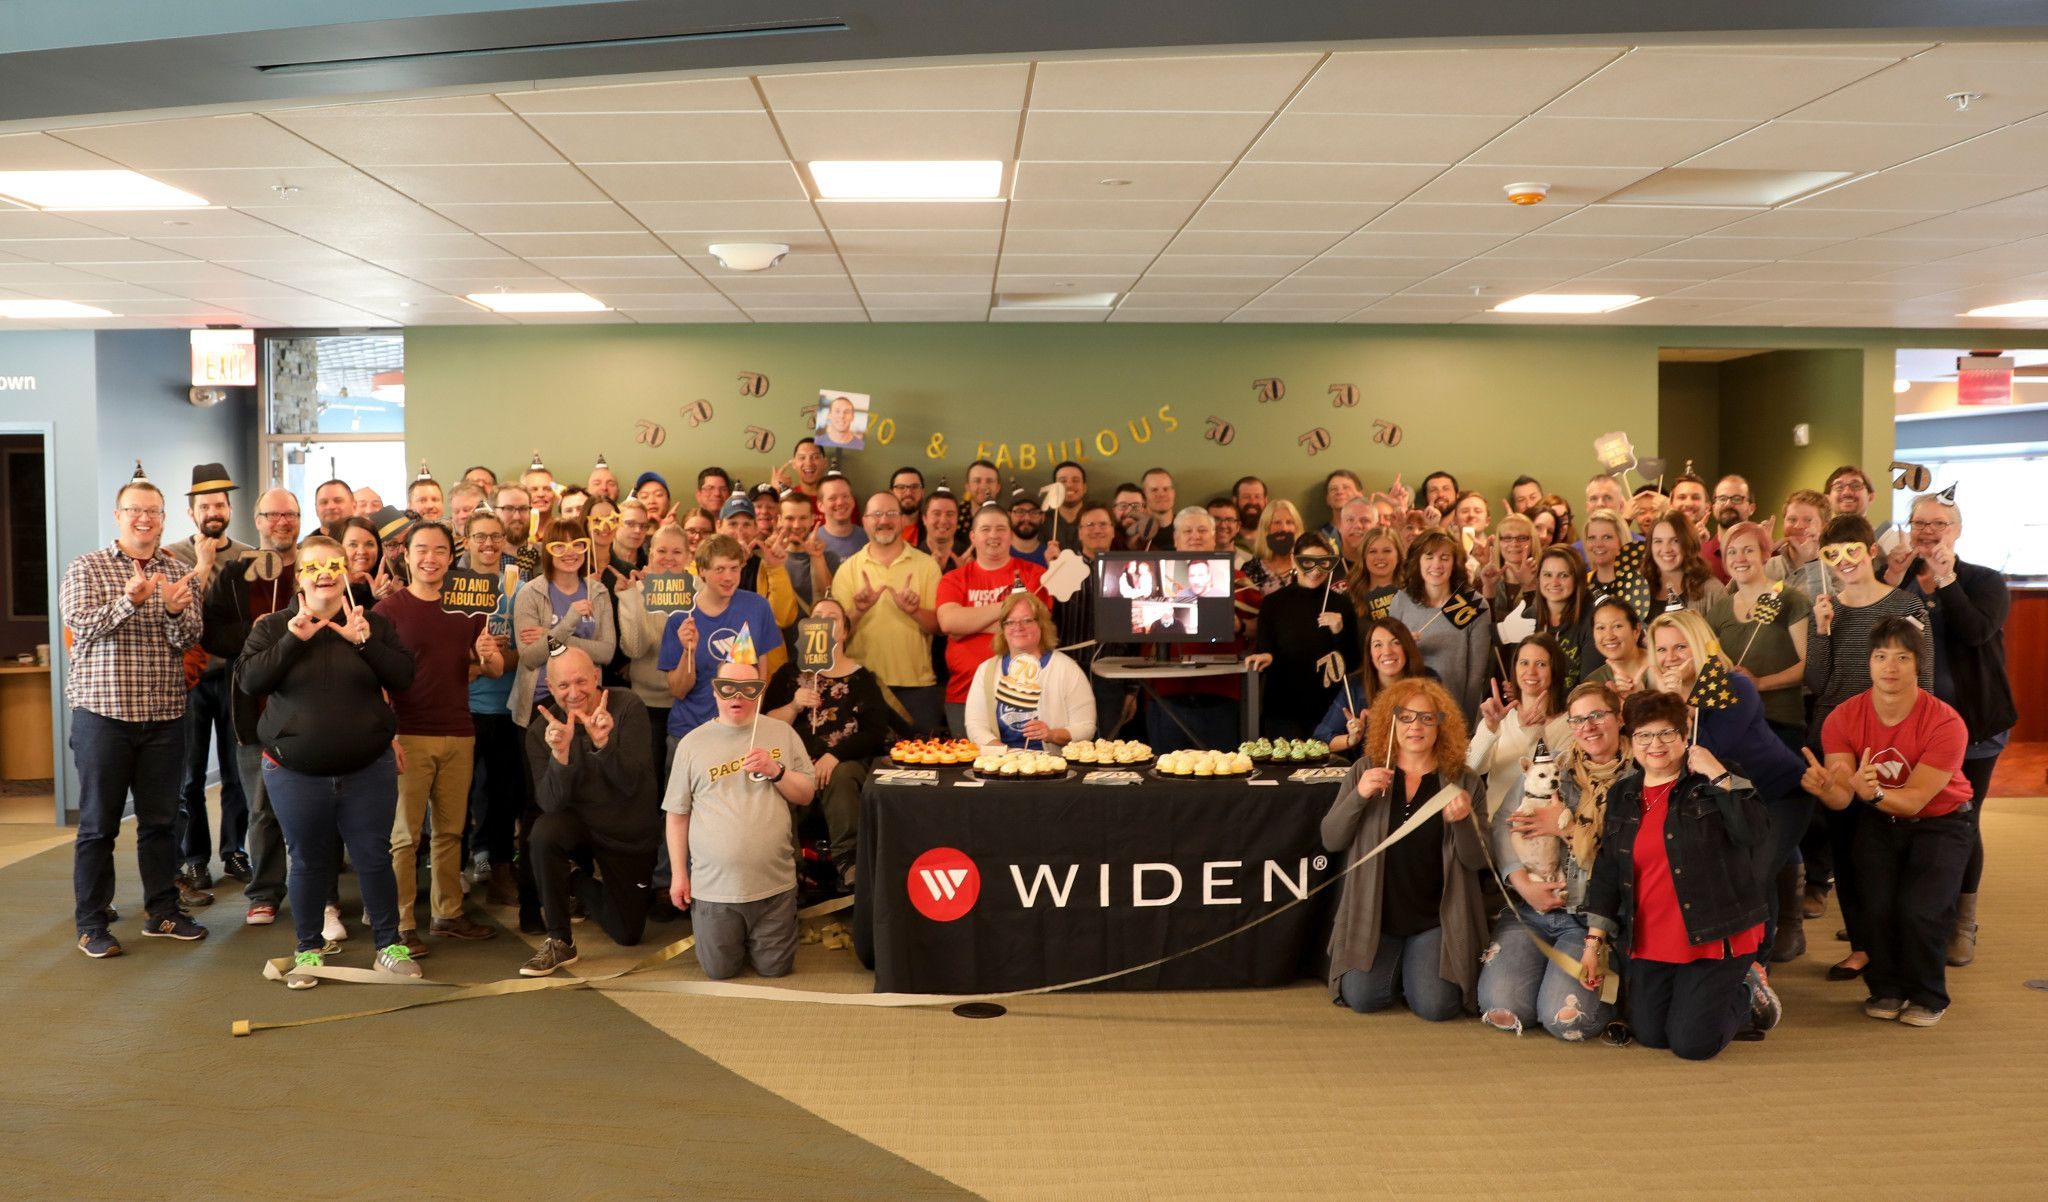 Widen celebrates 70 years of business in 2018